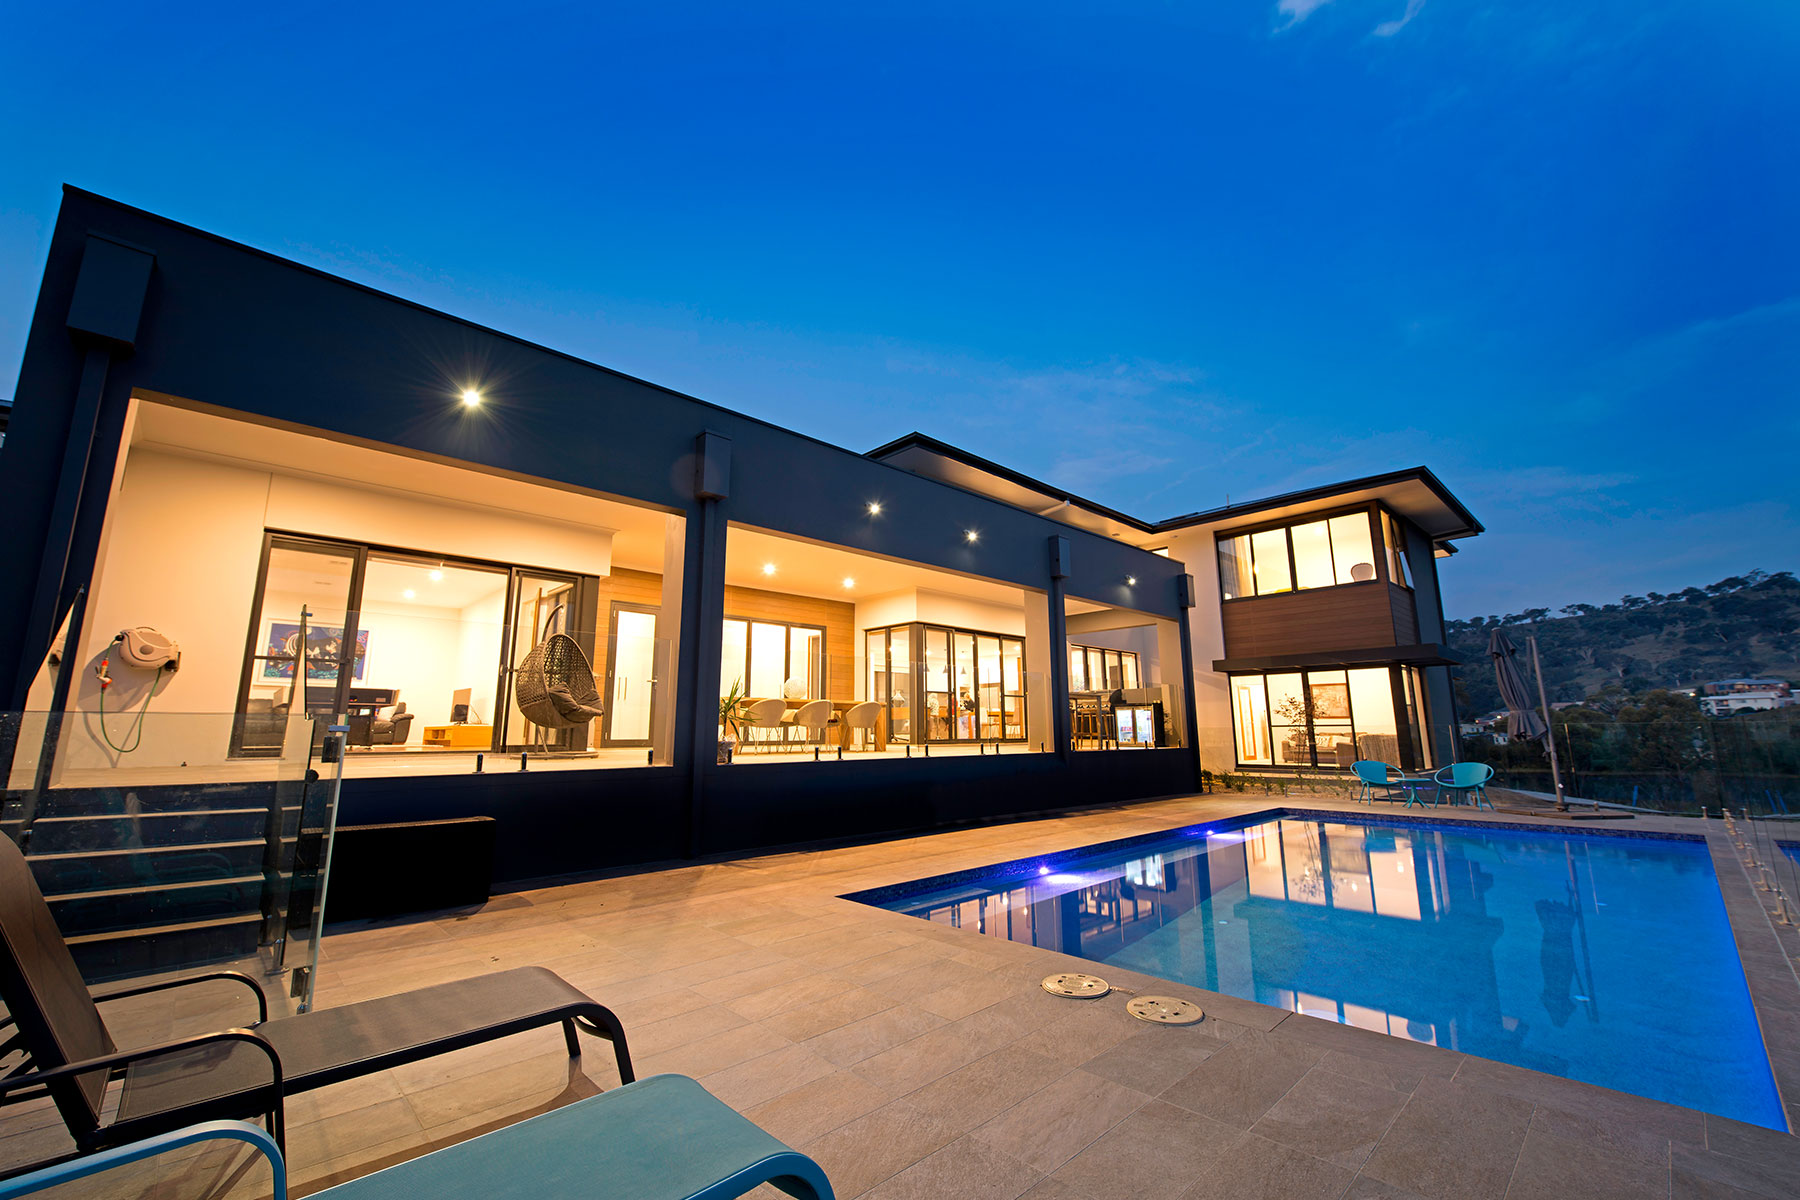 Spectacular home in bushland setting gallery image